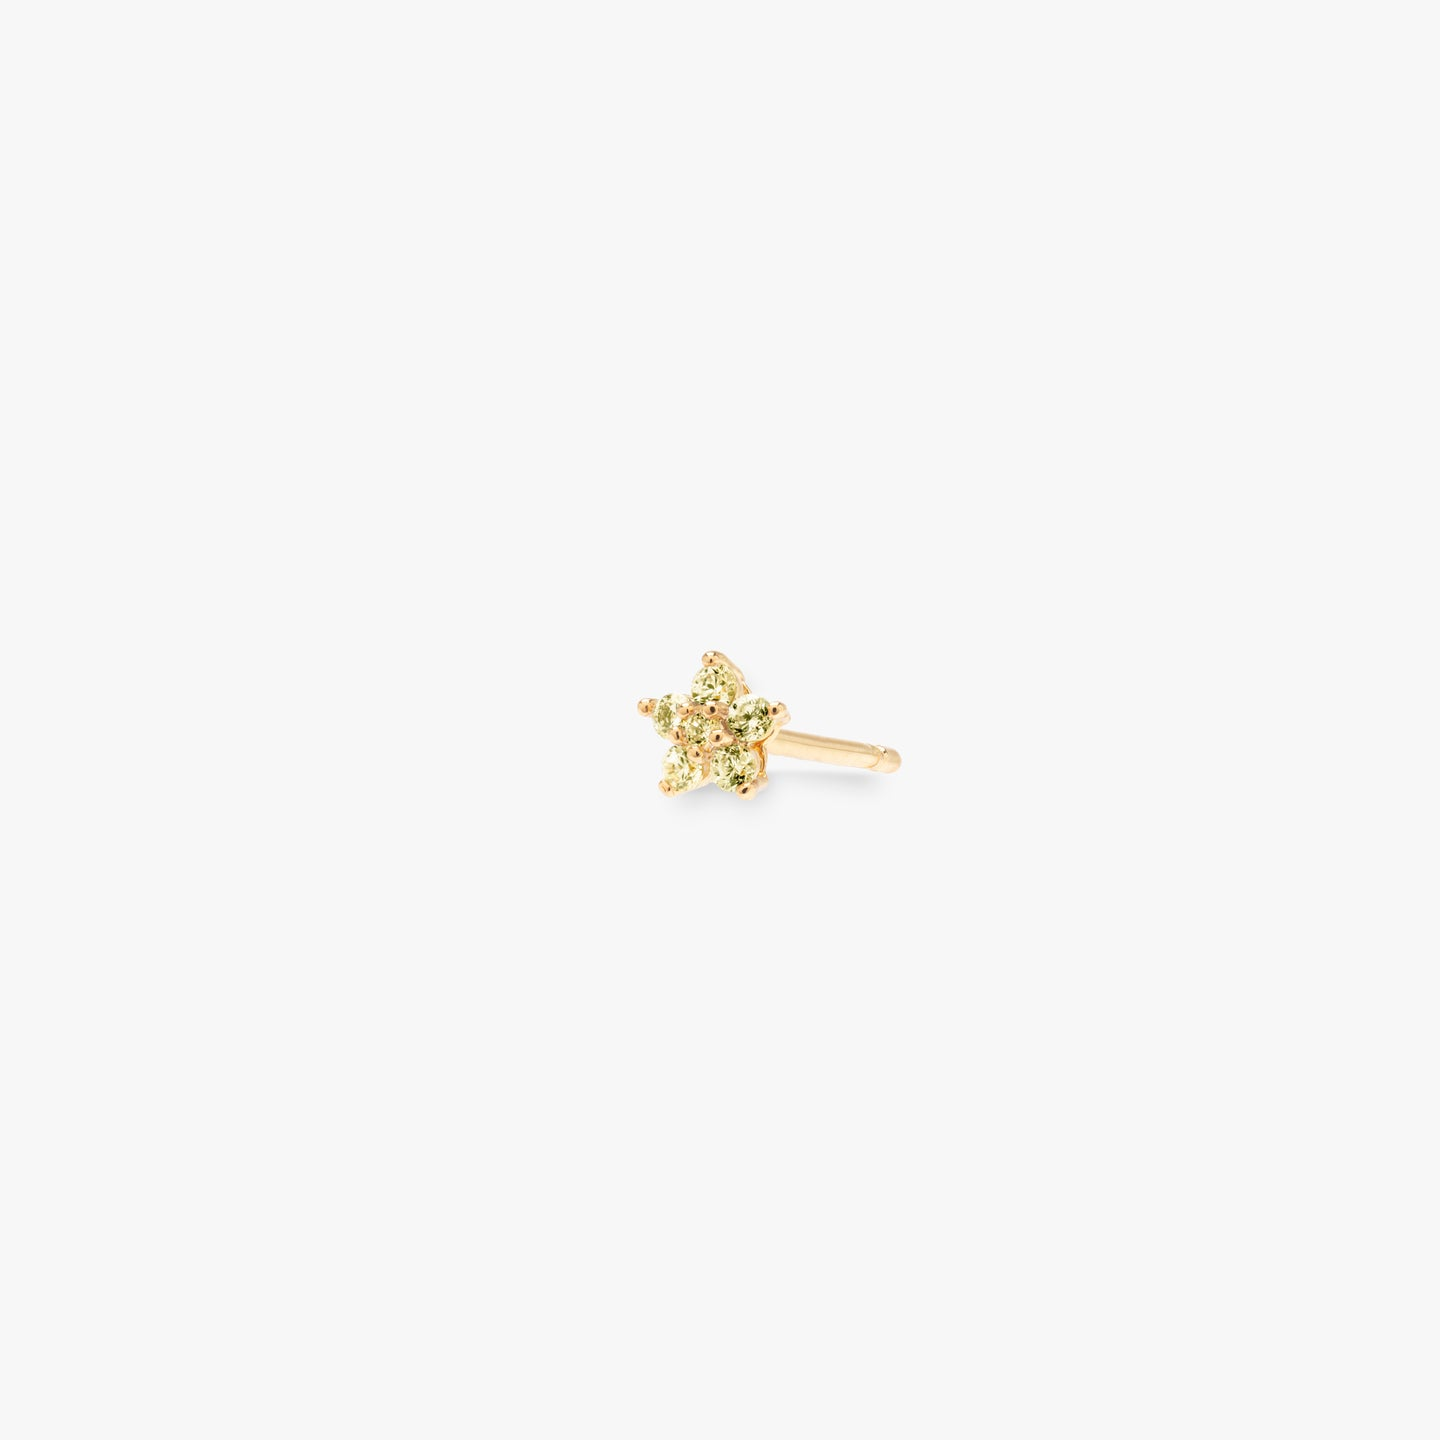 Gold flower shaped stud with yellow CZ accents. color:gold/yellow